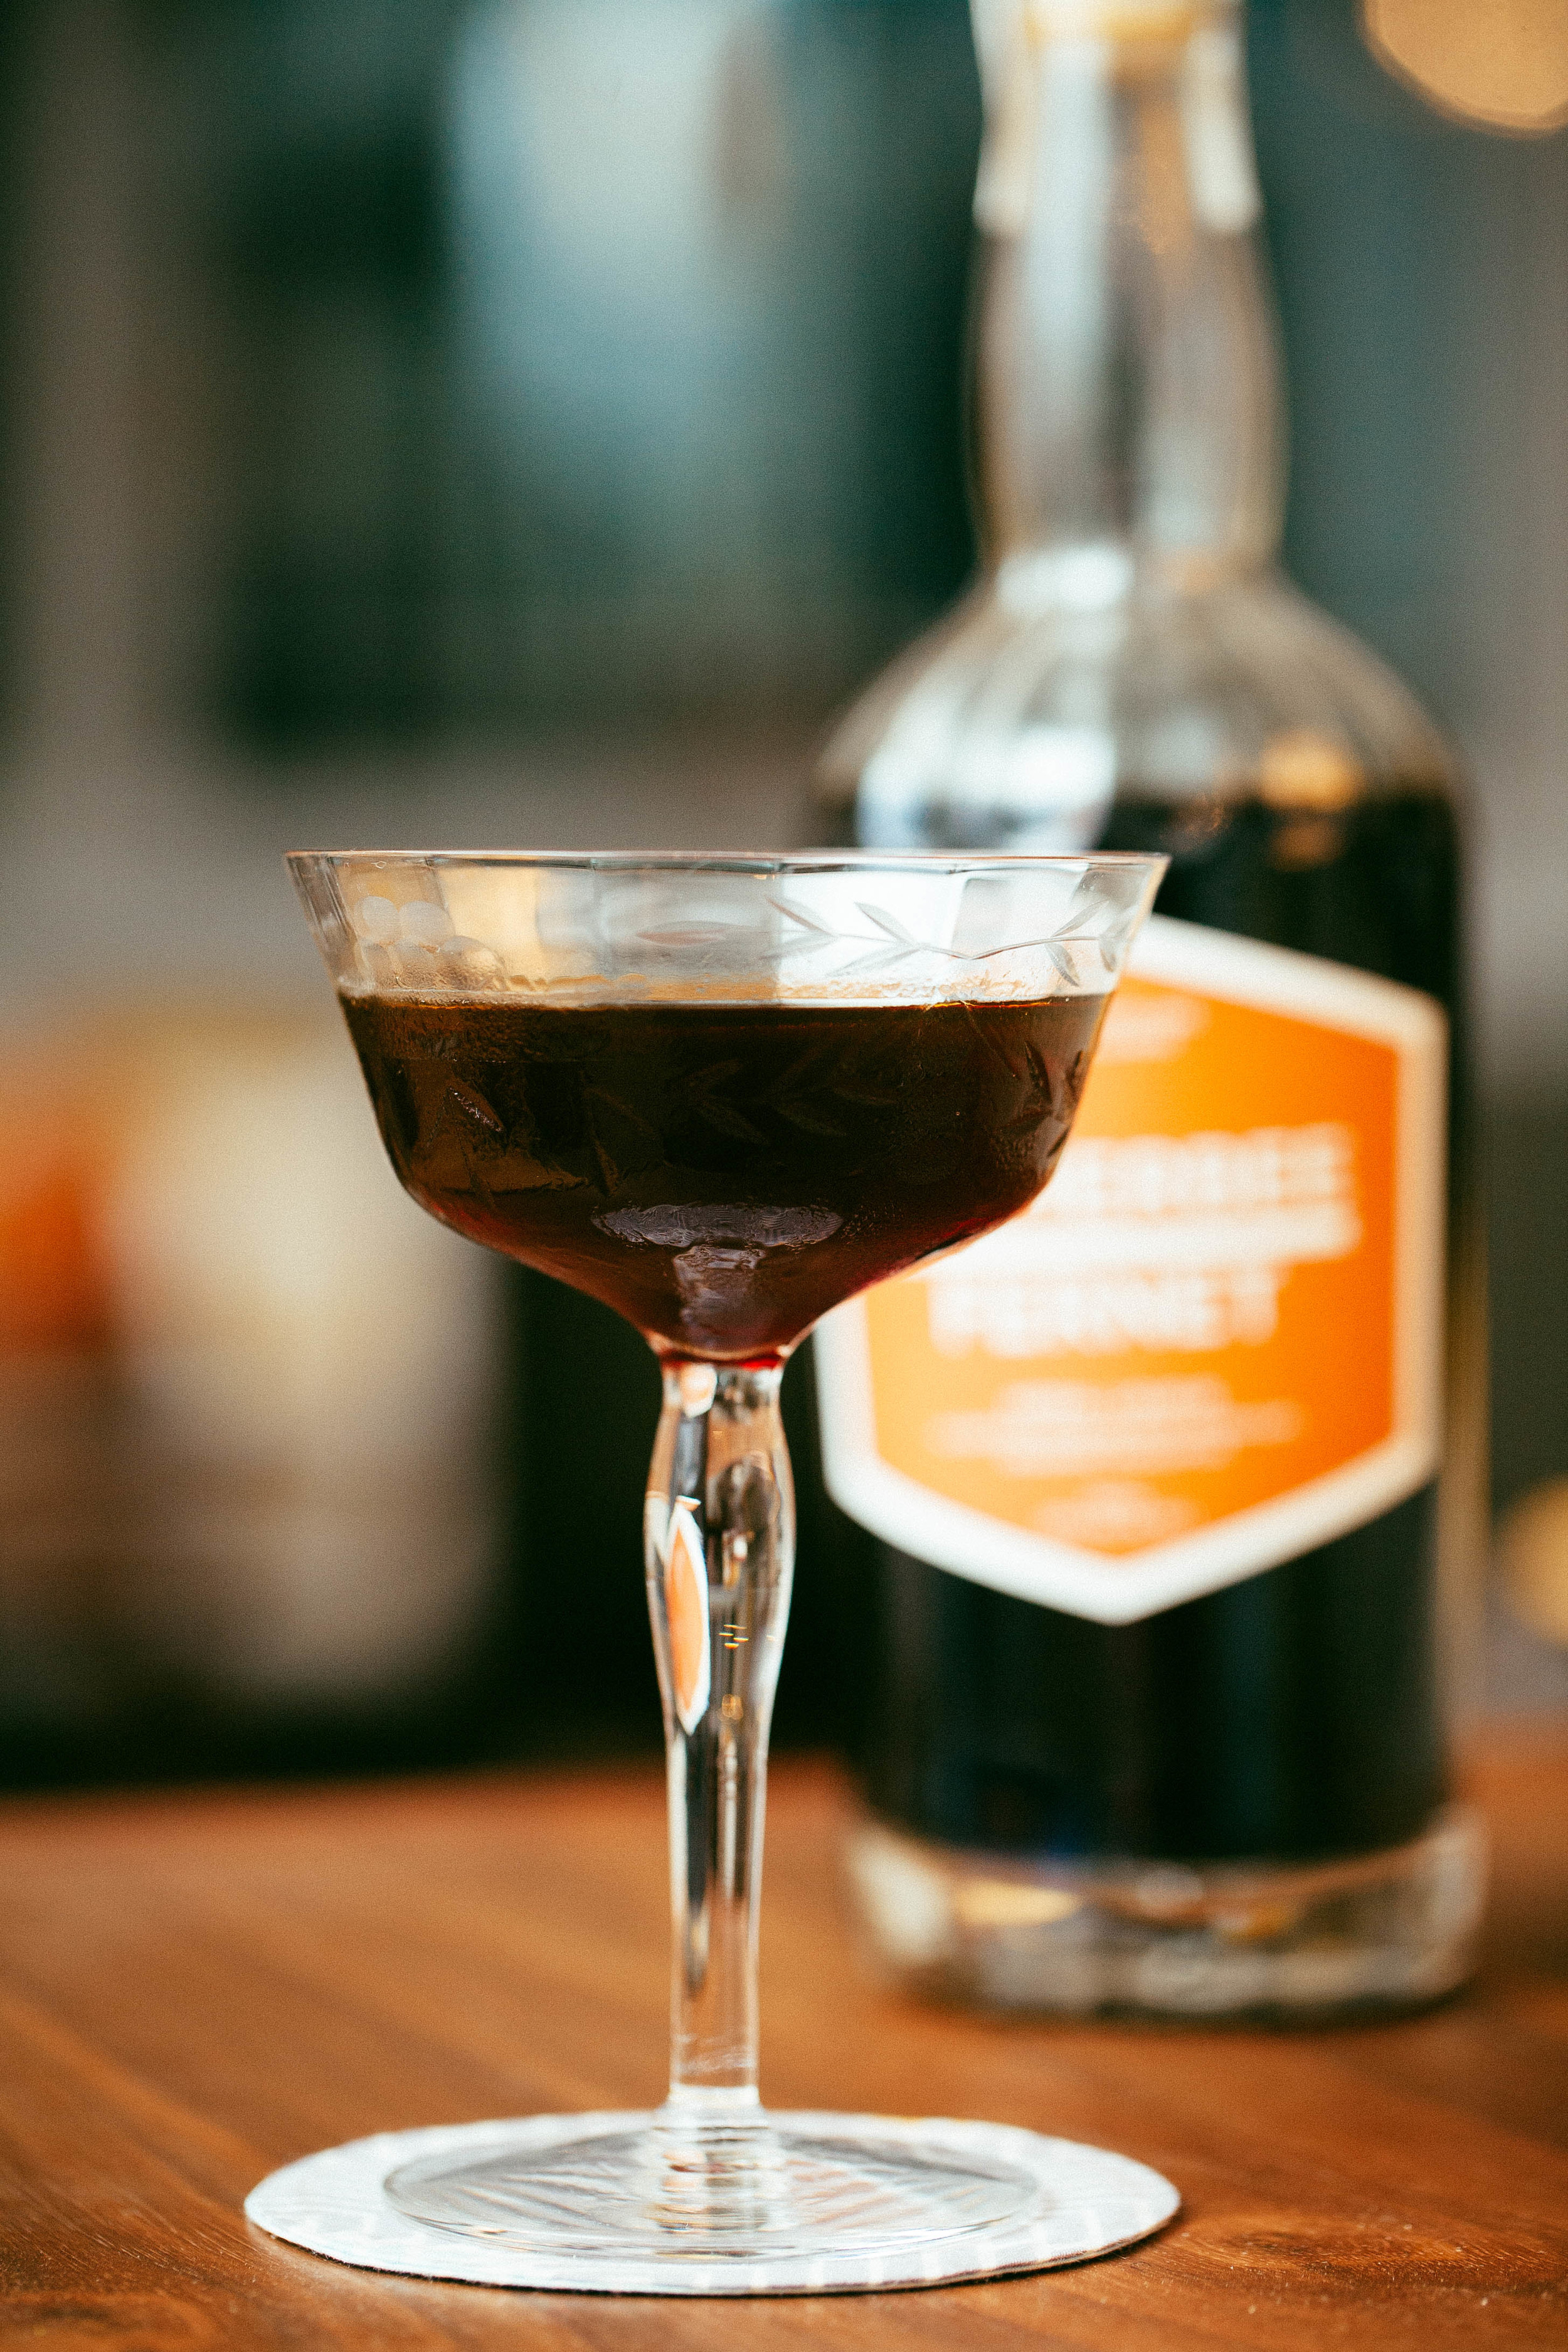 The Black Manhattan